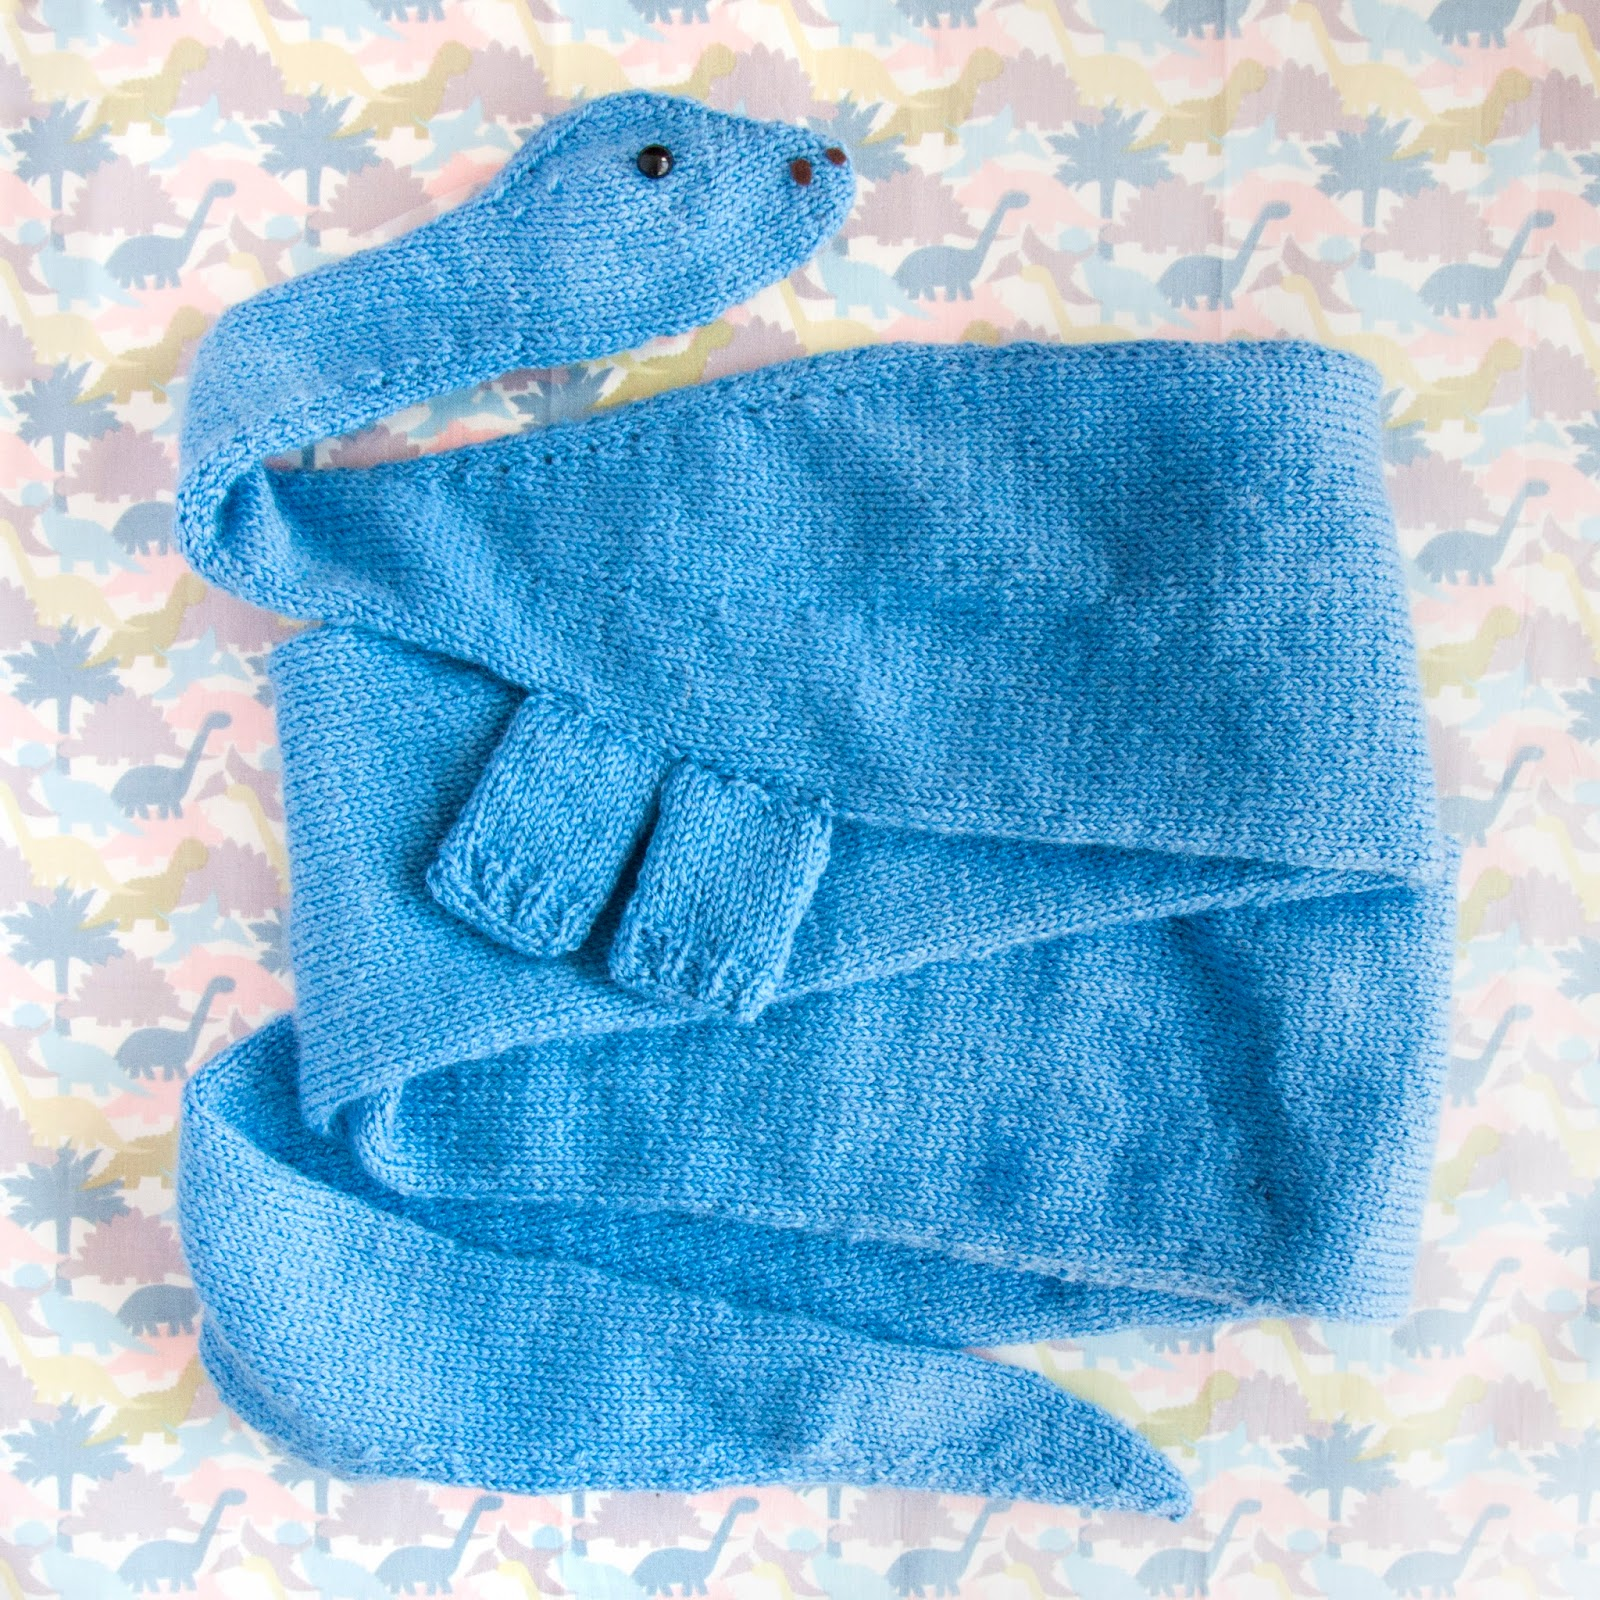 Dinosaur Scarf Knitting Pattern : Diplodocus Scarf Pattern - Free Until June 30th! SINCERELY LOUISE